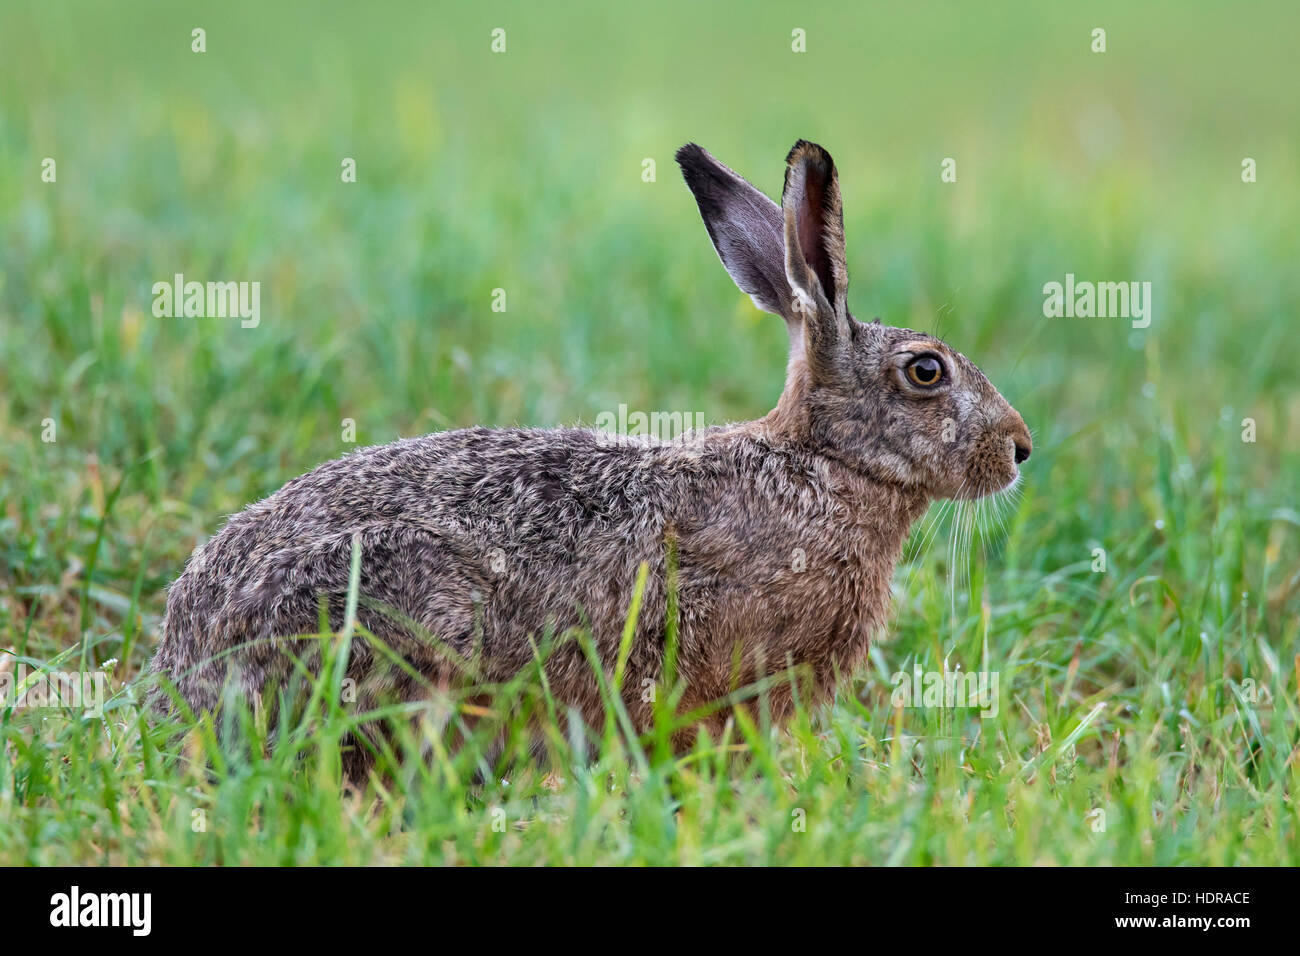 European Brown Hare (Lepus europaeus) assis dans les prairies Photo Stock